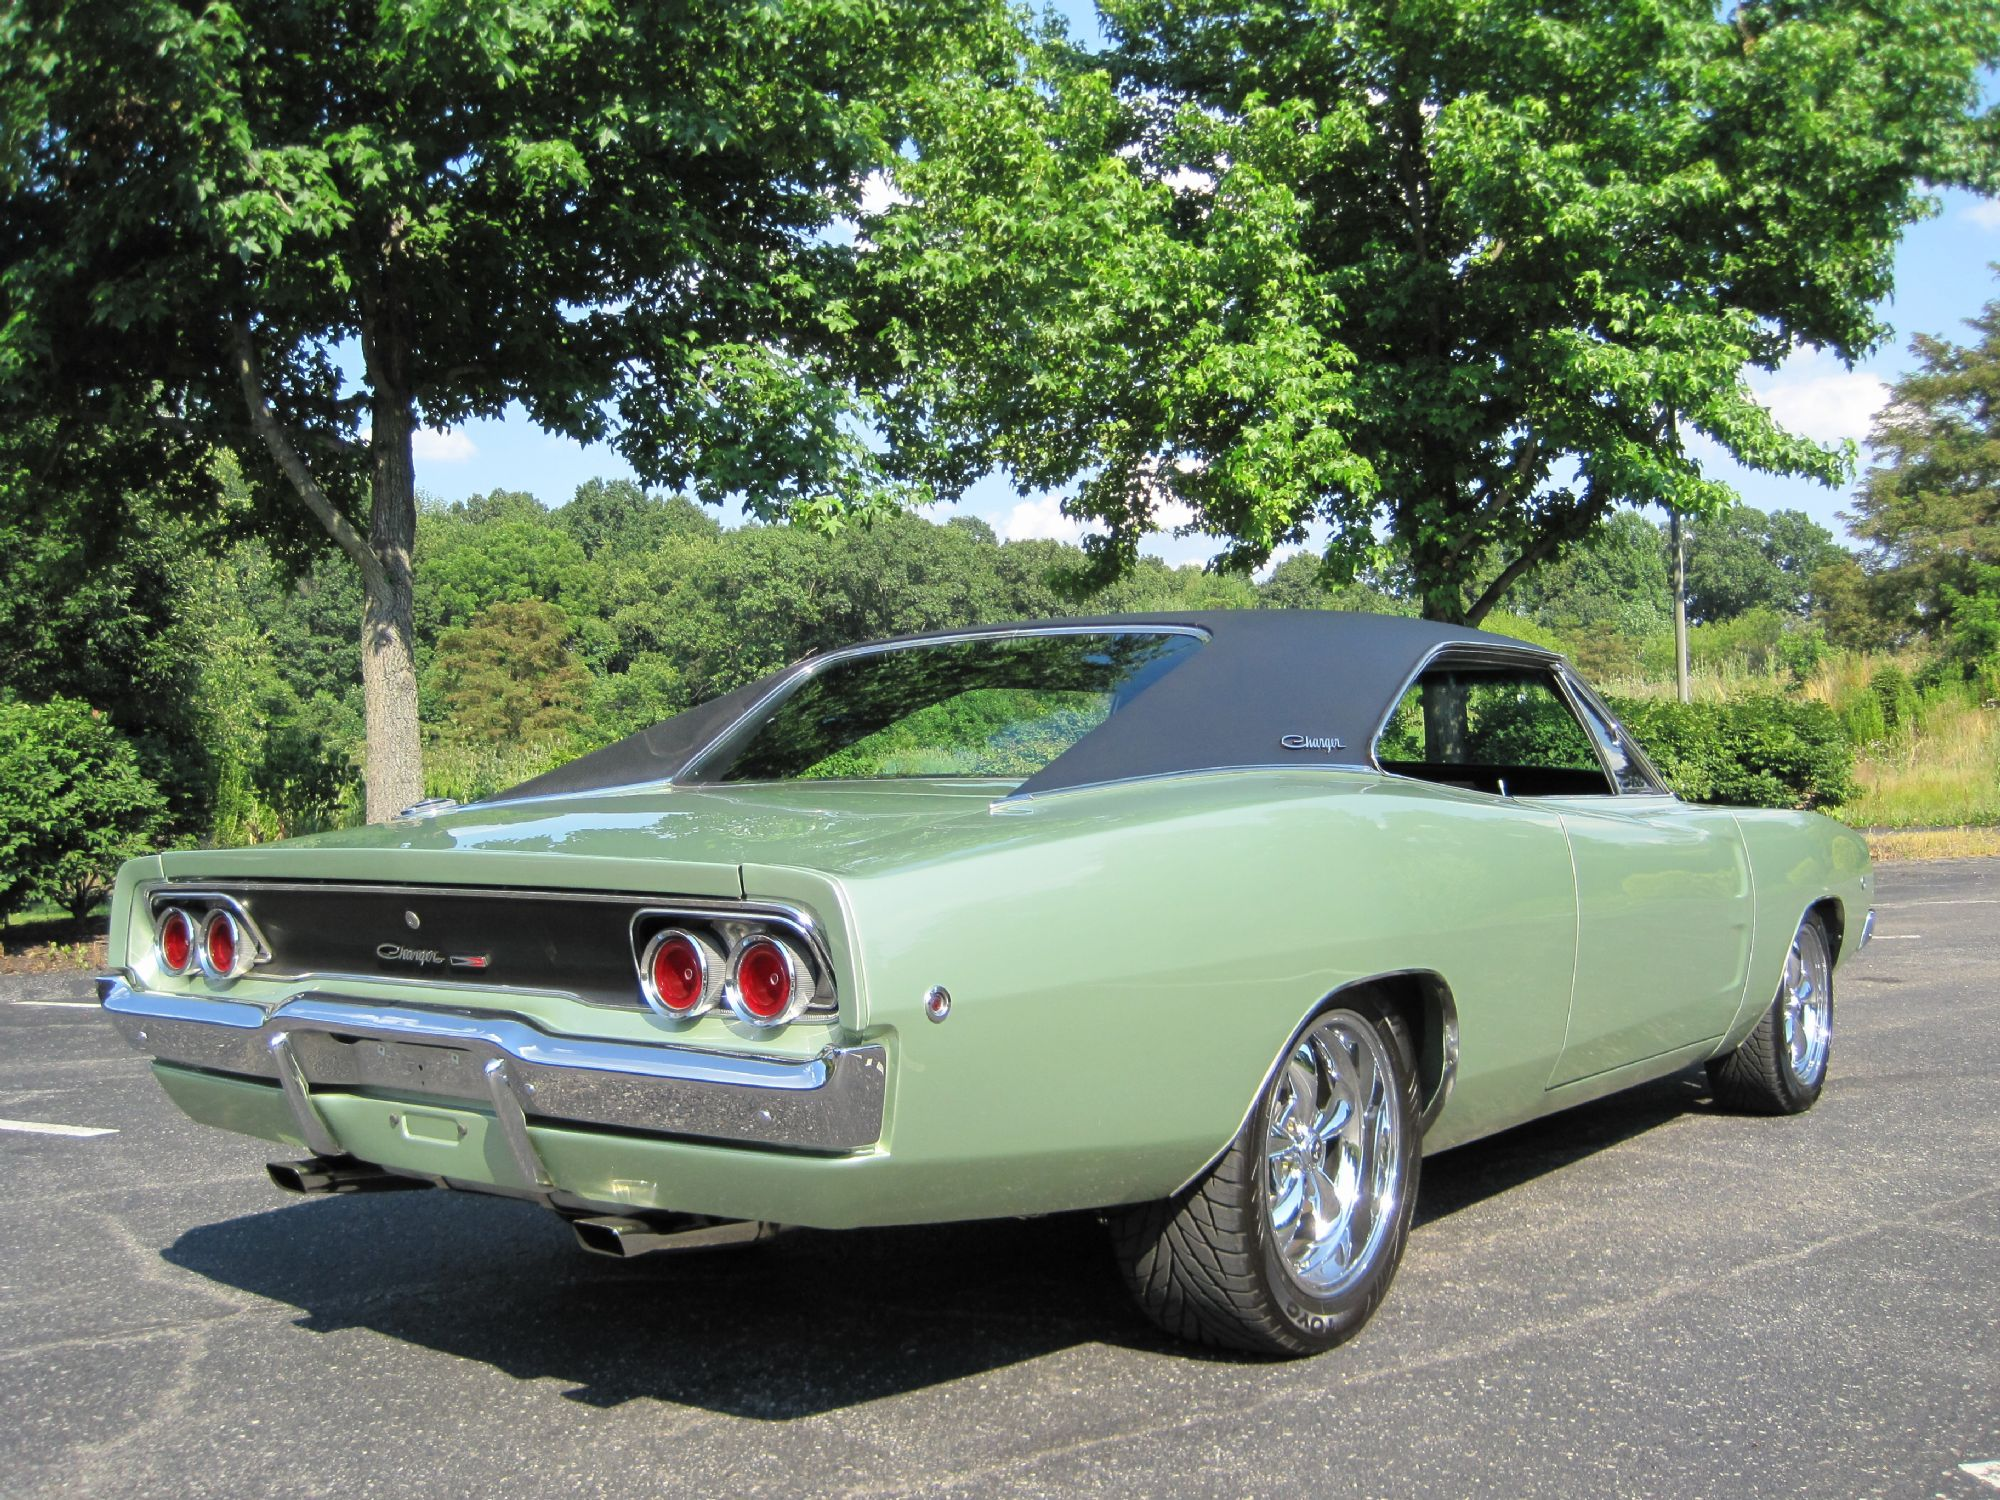 Auto Rotisserie For Sale Canada: 1968 Dodge Charger Rotisserie Resto !! Spectacular Show